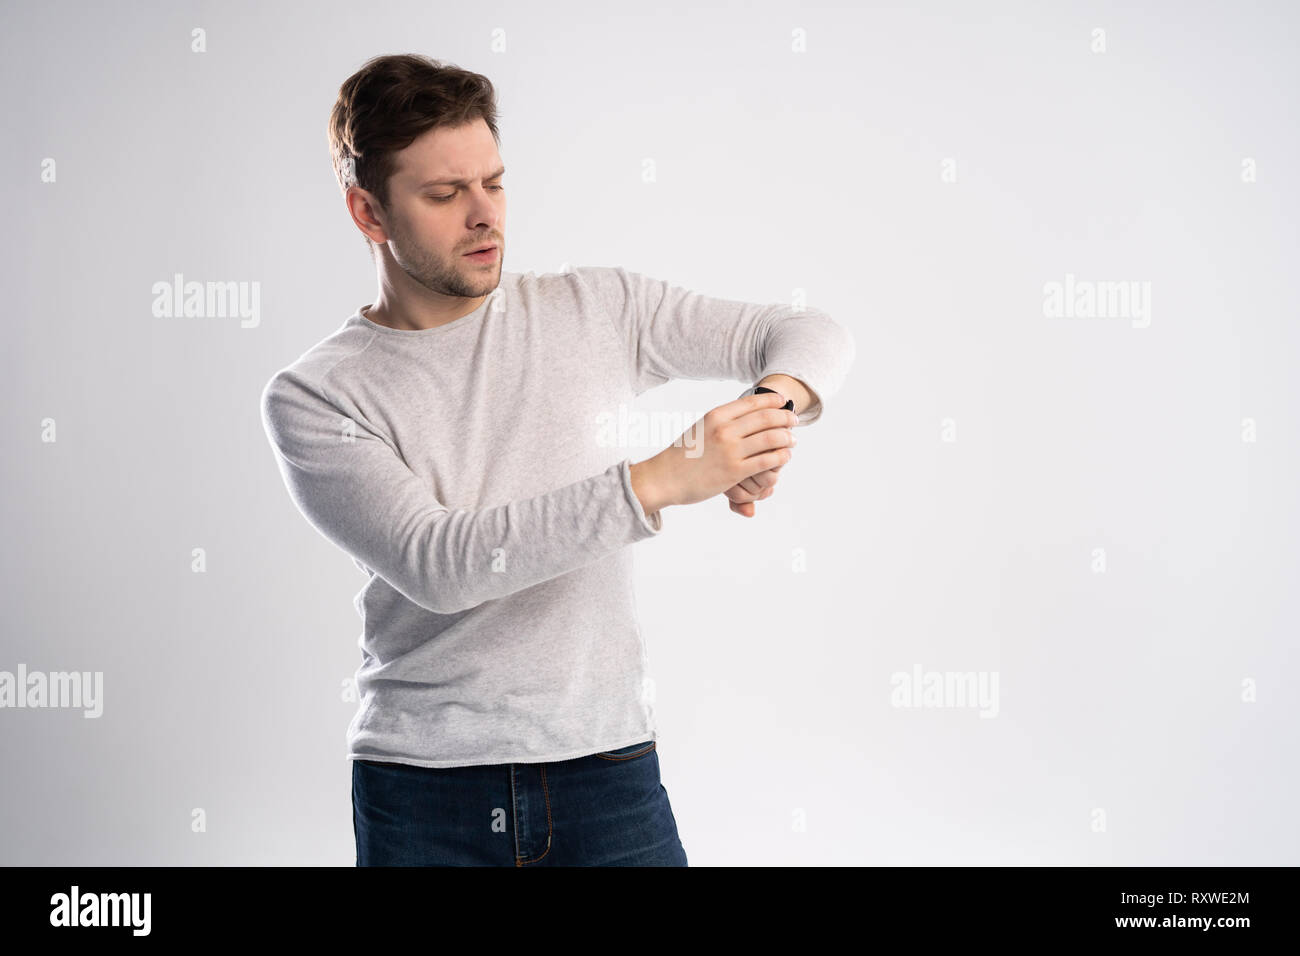 Portrait of a shocked man looking on wrist watch over white background. - Stock Image